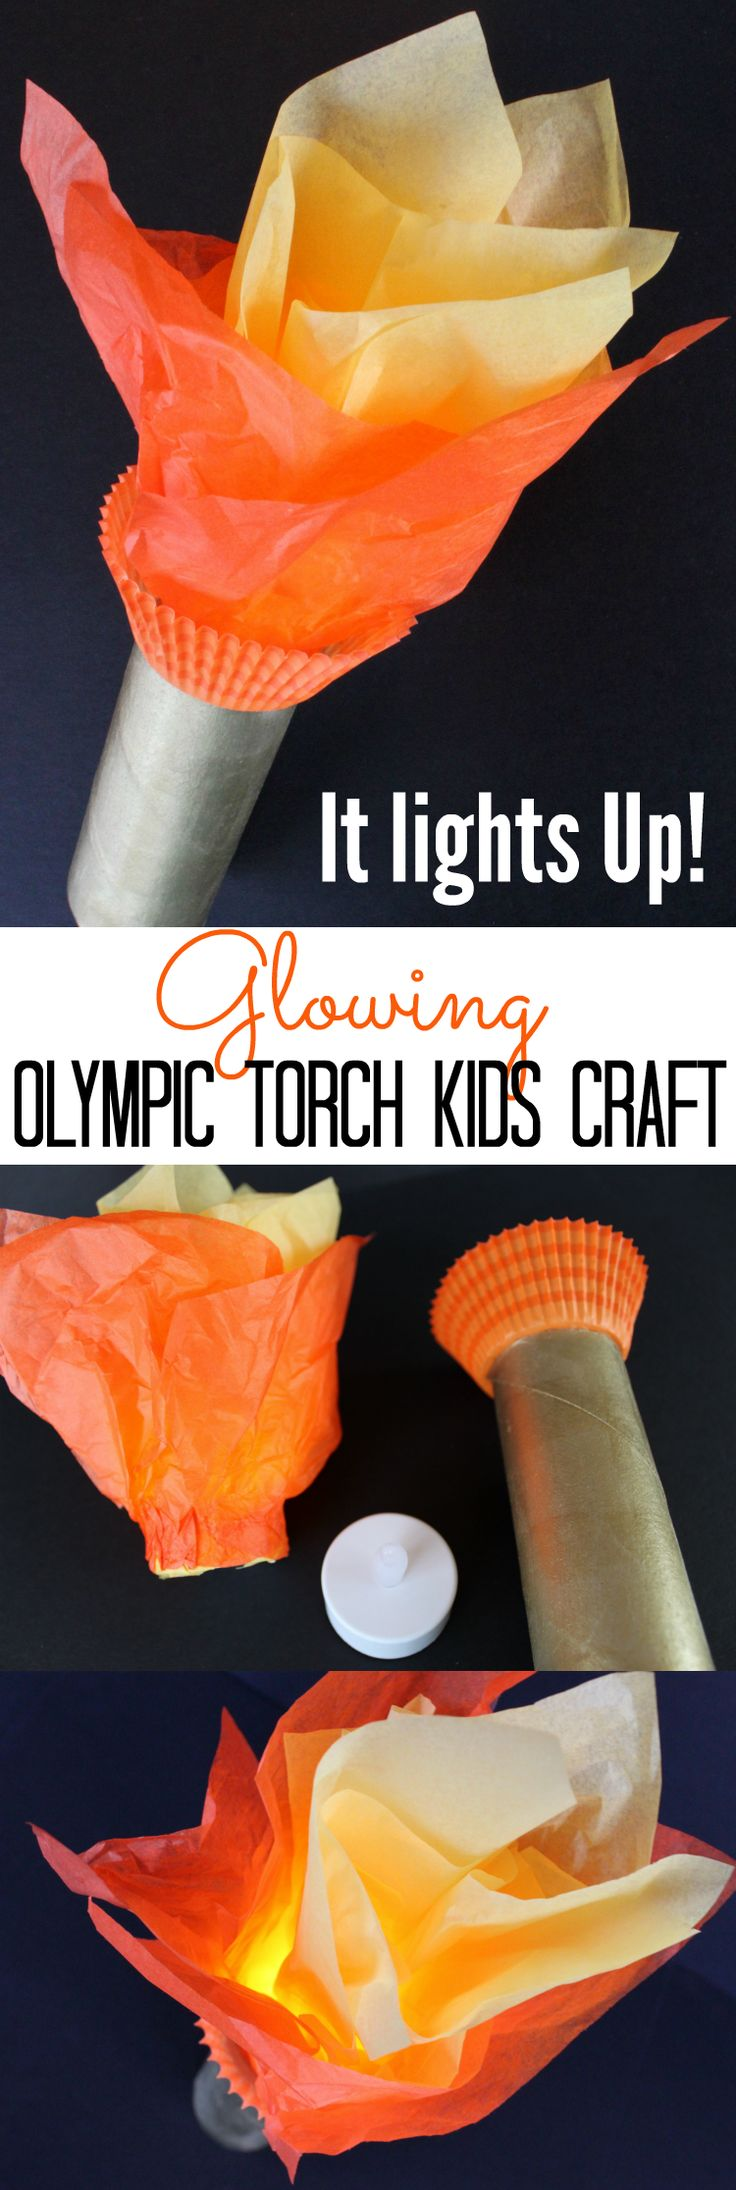 IT LIGHTS UP! Olympic Torch Kids Craft for the Summer and Winter Olympics - A toilet paper roll craft for kids to hold during the Olympic Opening Ceremony!